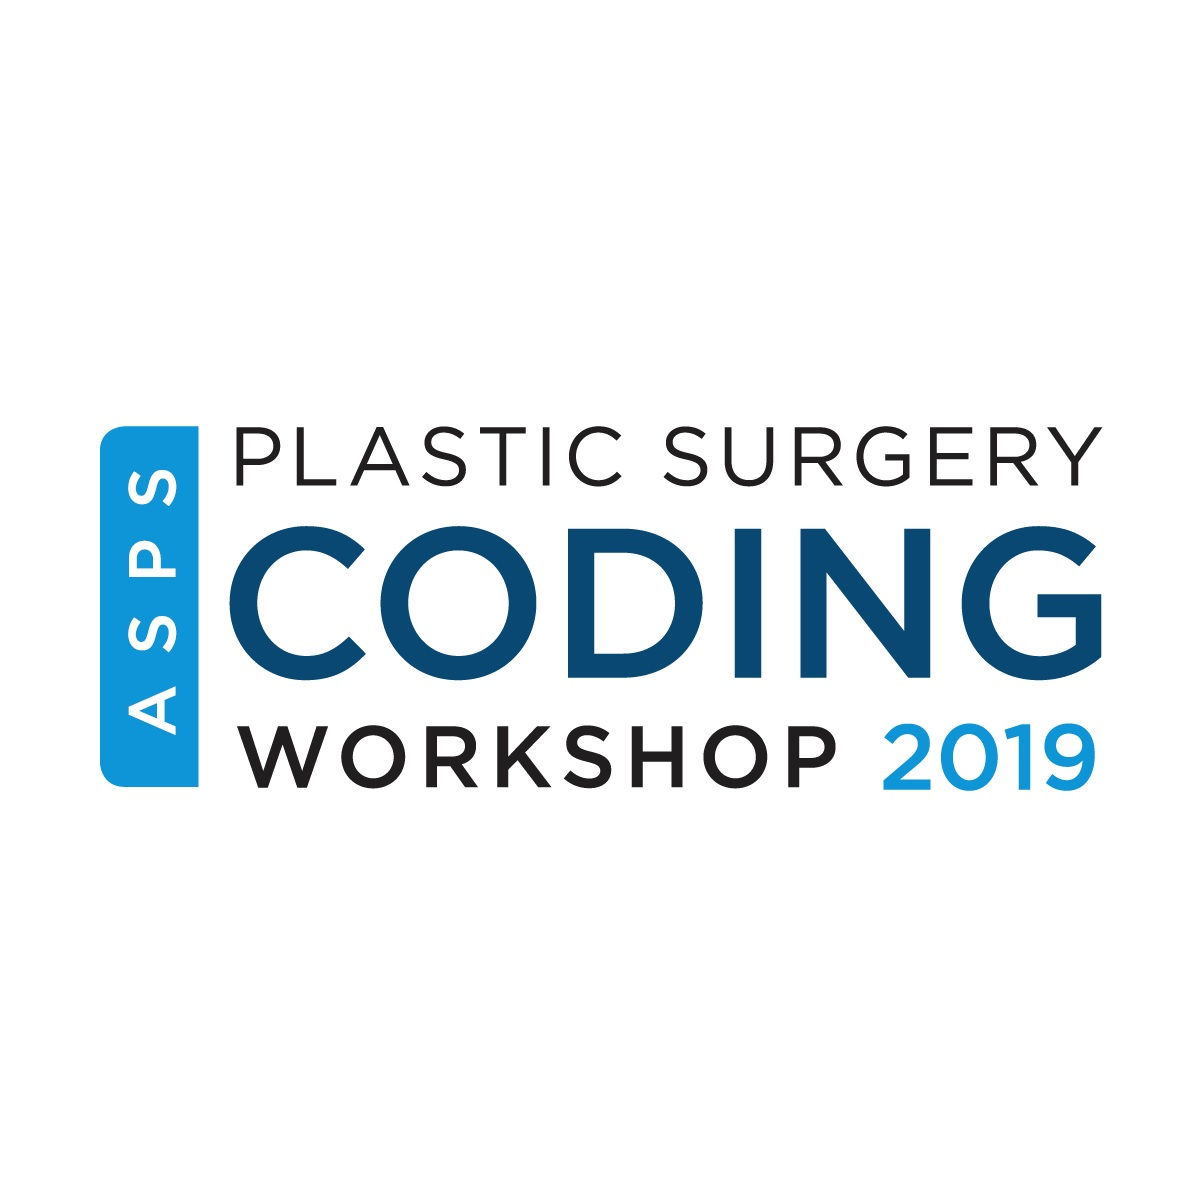 Plastic Surgery Coding Workshop – 2019